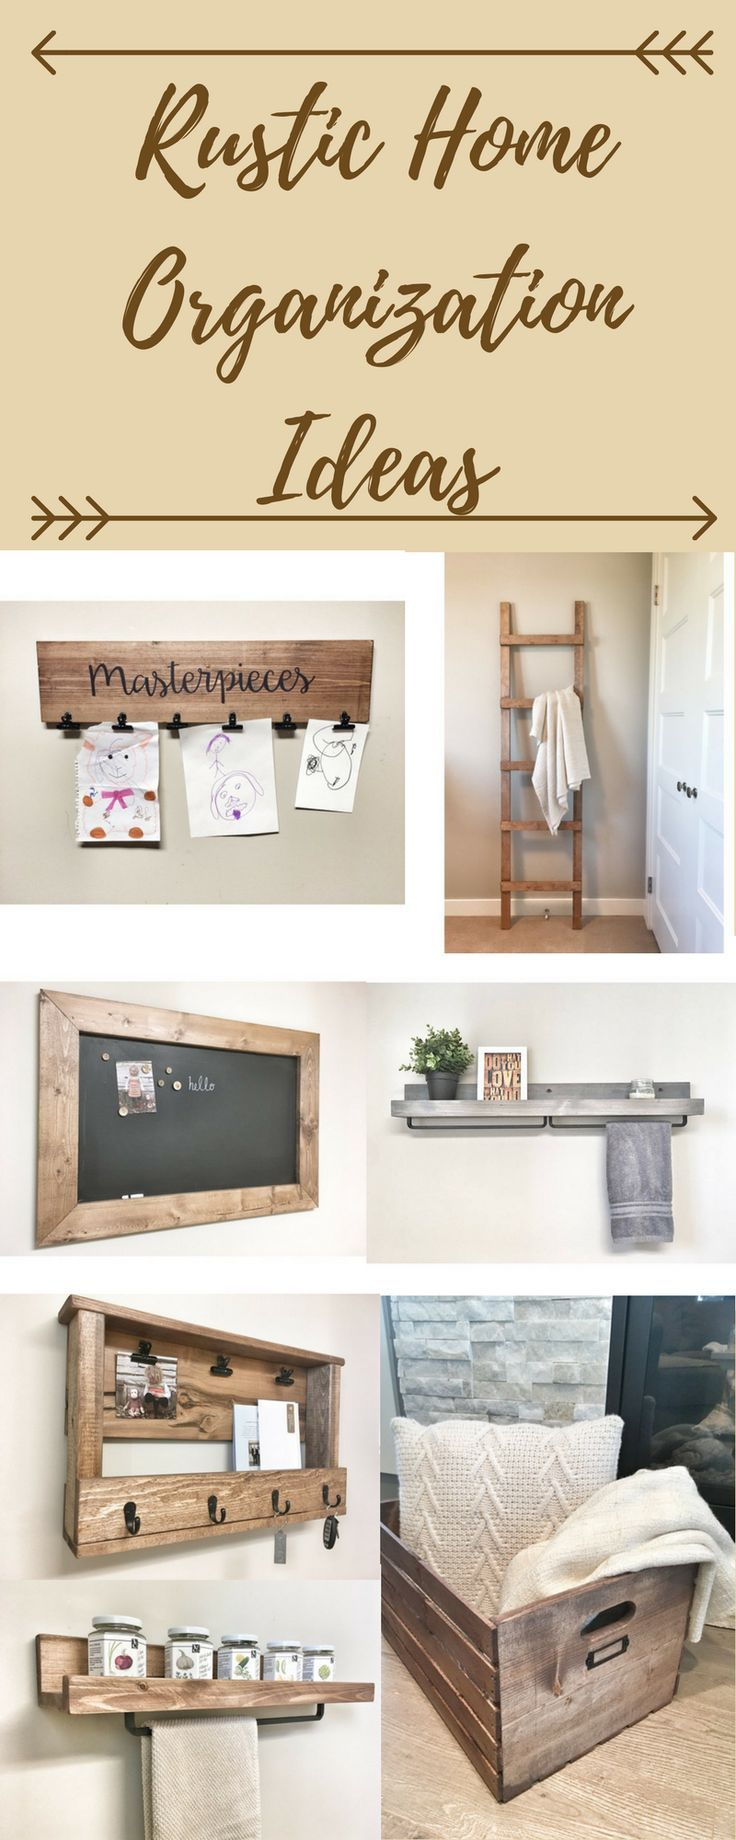 Organize your home with these rustic decor ideas. Farmhouse decor ...